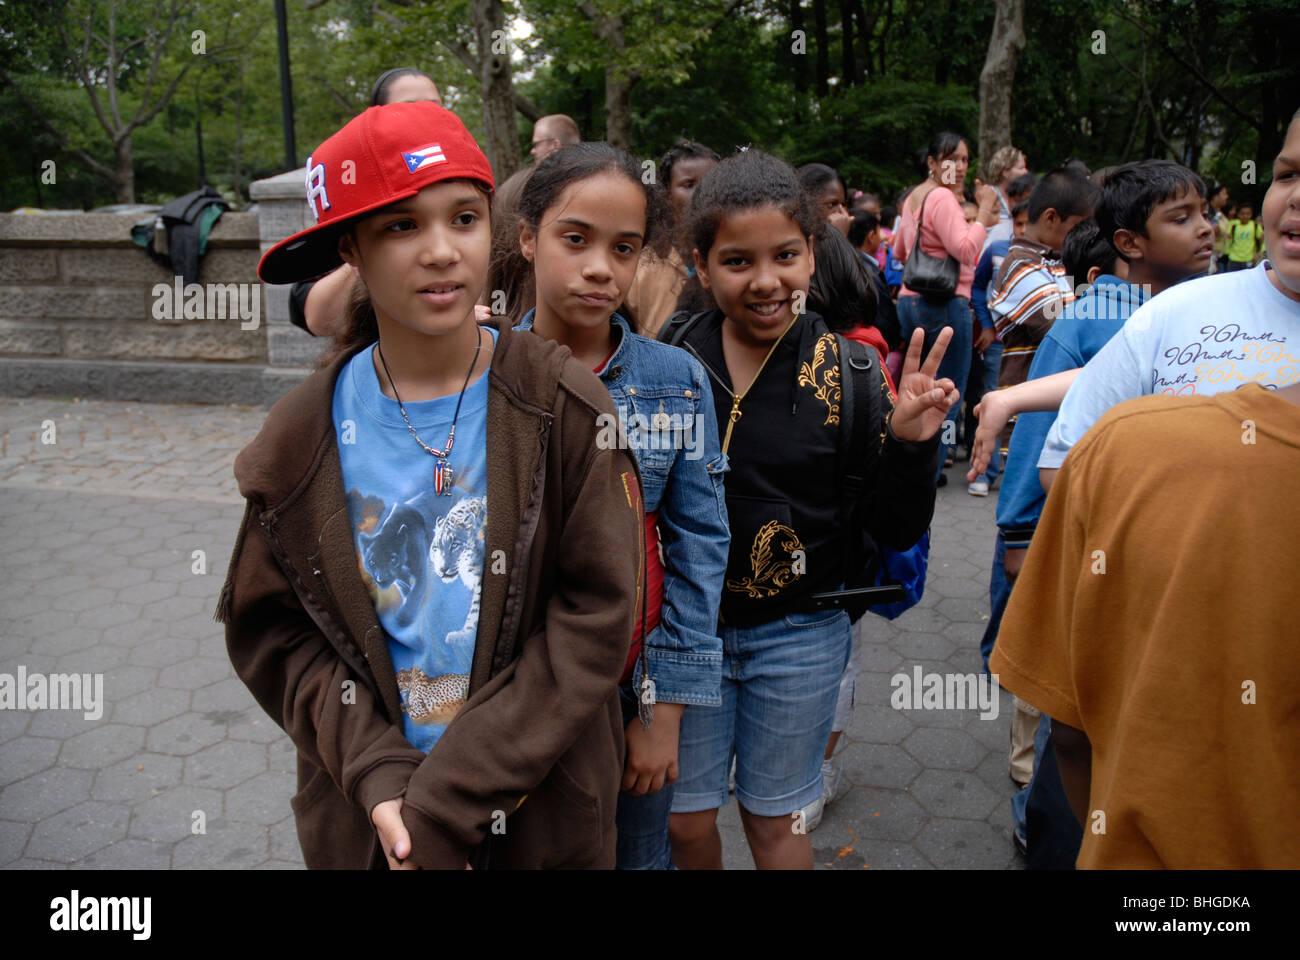 New York City School children waiting for bus to take them home - Stock Image